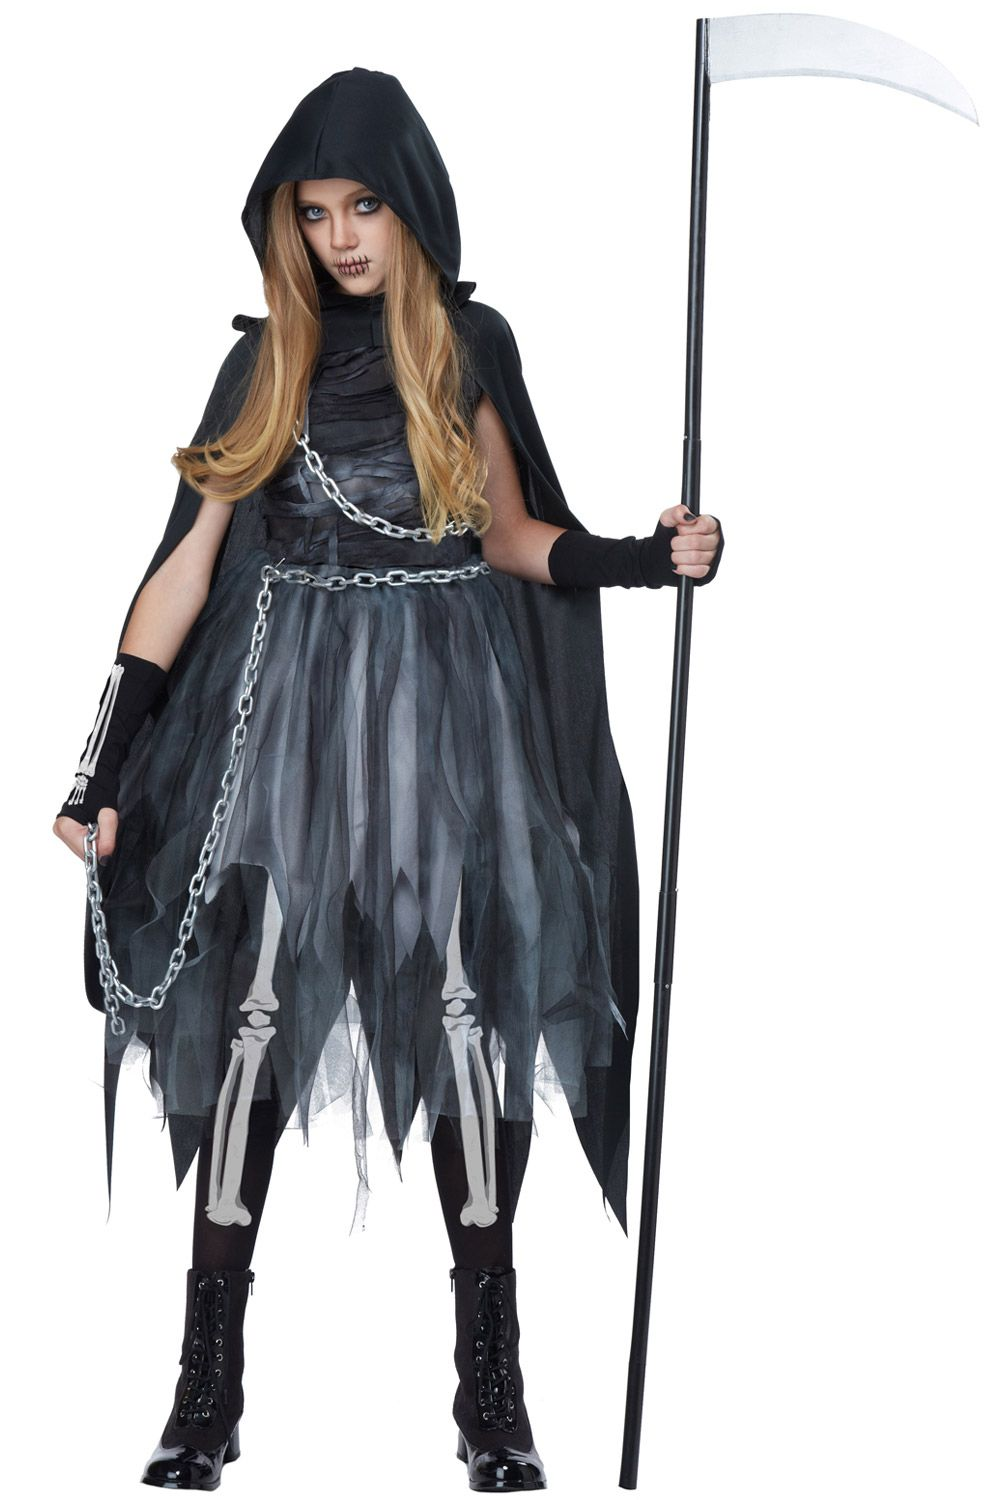 Schön Halloween Is The Time To Ghoul It Up And Thereu0027s Nothing More Ghoulish Than  The Grim Reaper. This Reaper Girl Costume Is As Spooky As They Come.